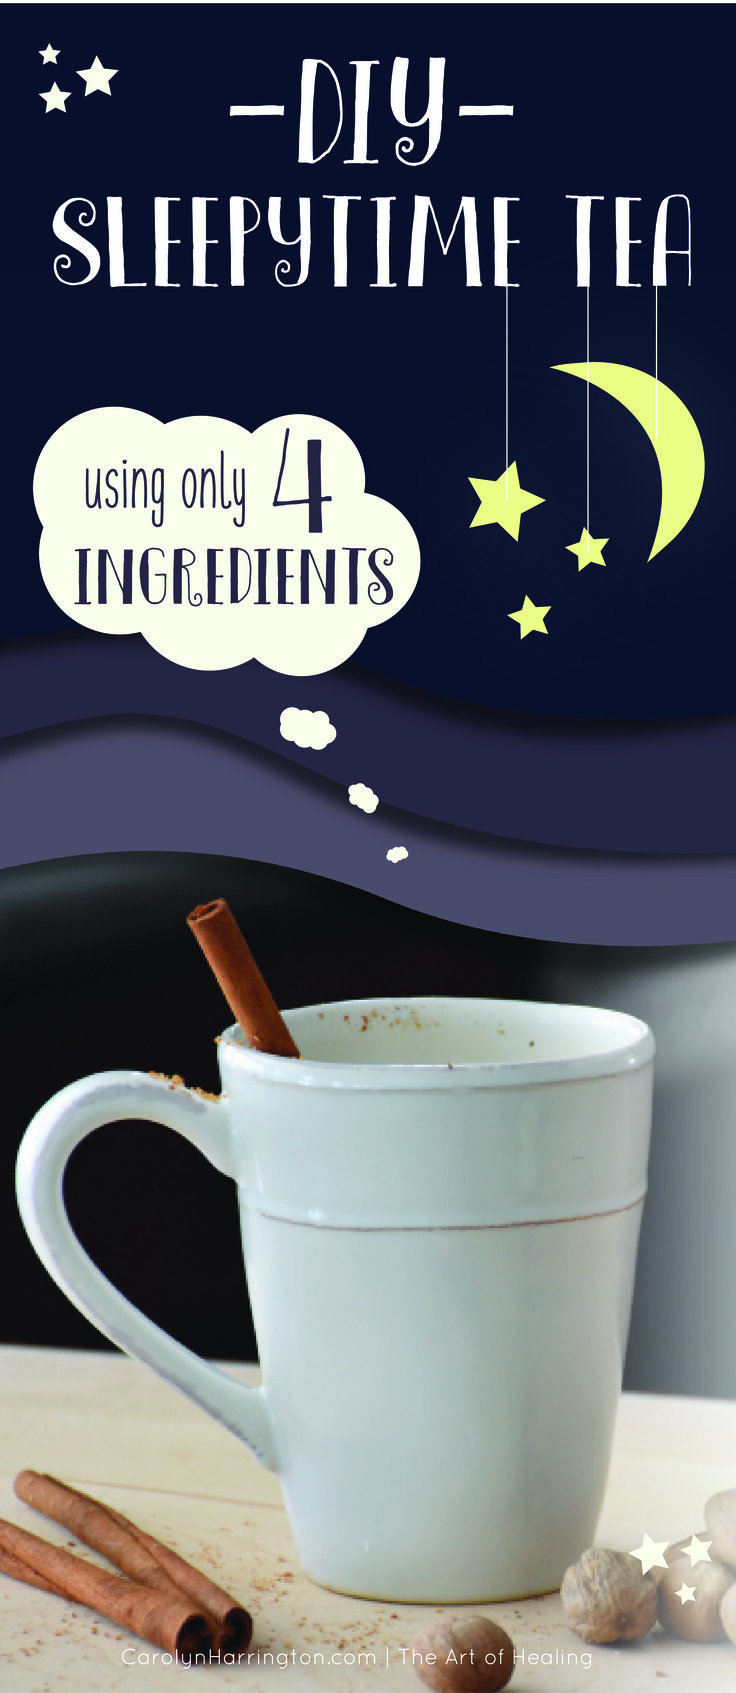 Easy DIY nighttime tea recipe using chamomile and nutmeg. http://teapause.com/healthiest-teas-to-drink/best-tea-for-a-cold-and-sore-throat/